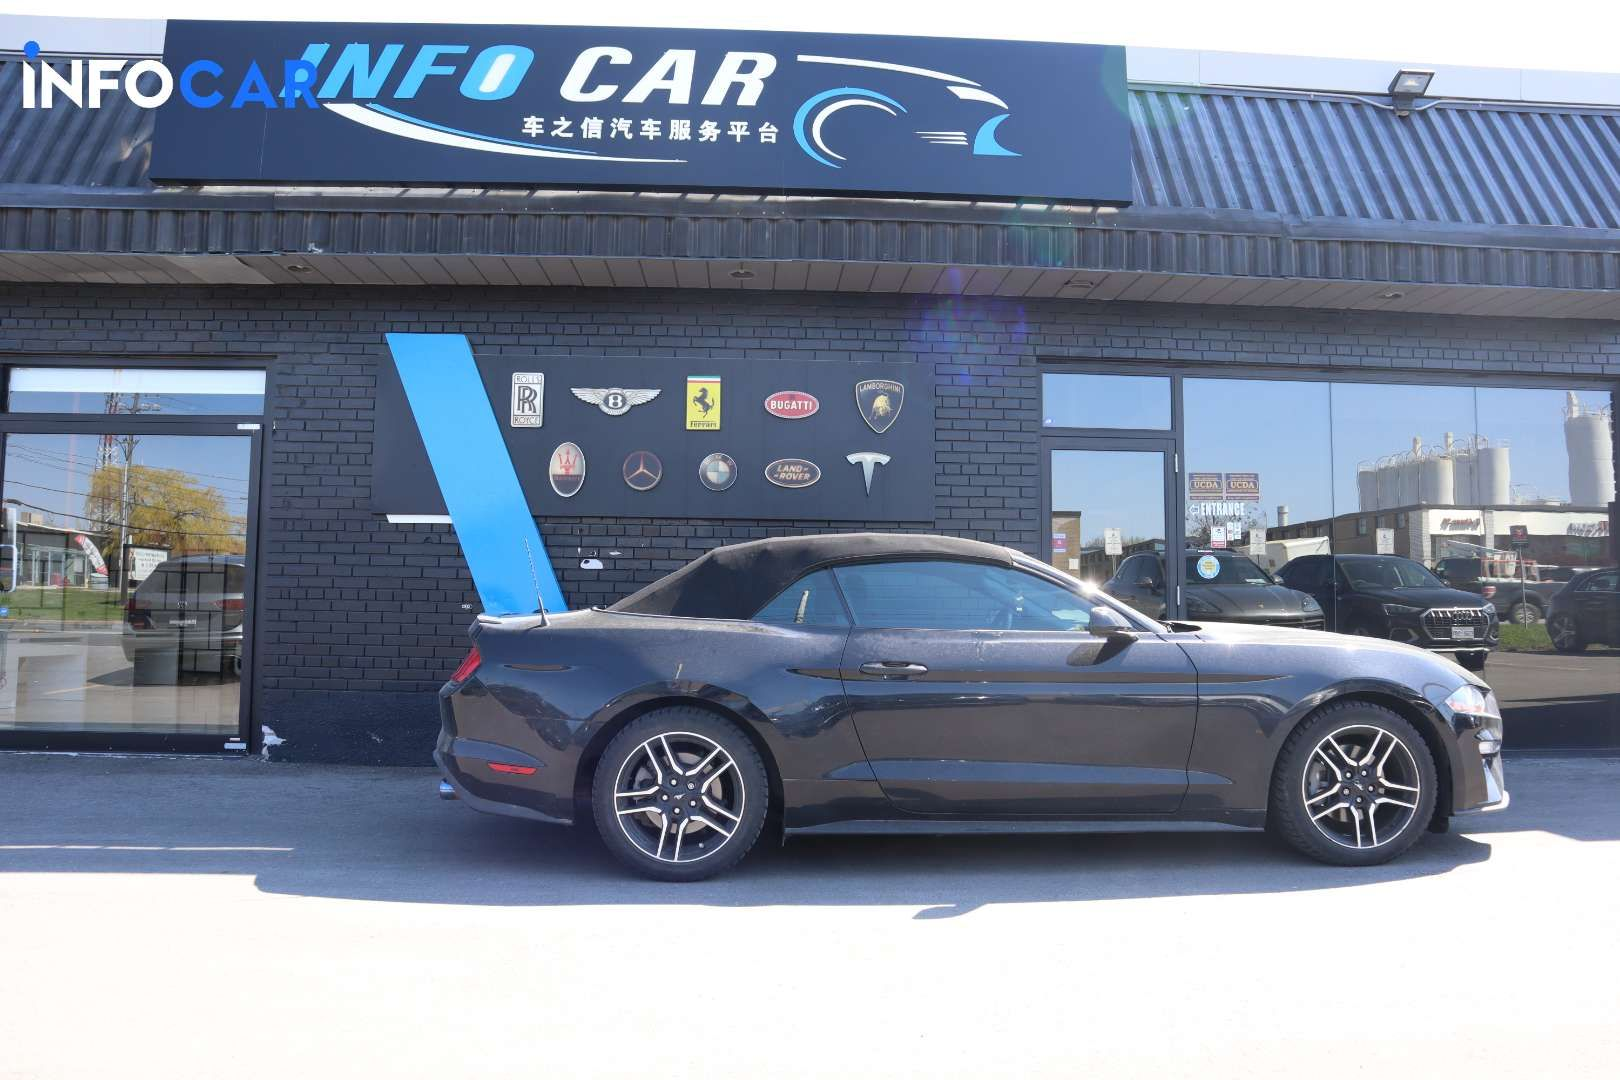 2019 Ford Mustang ECO CONVERTIBLE - INFOCAR - Toronto's Most Comprehensive New and Used Auto Trading Platform